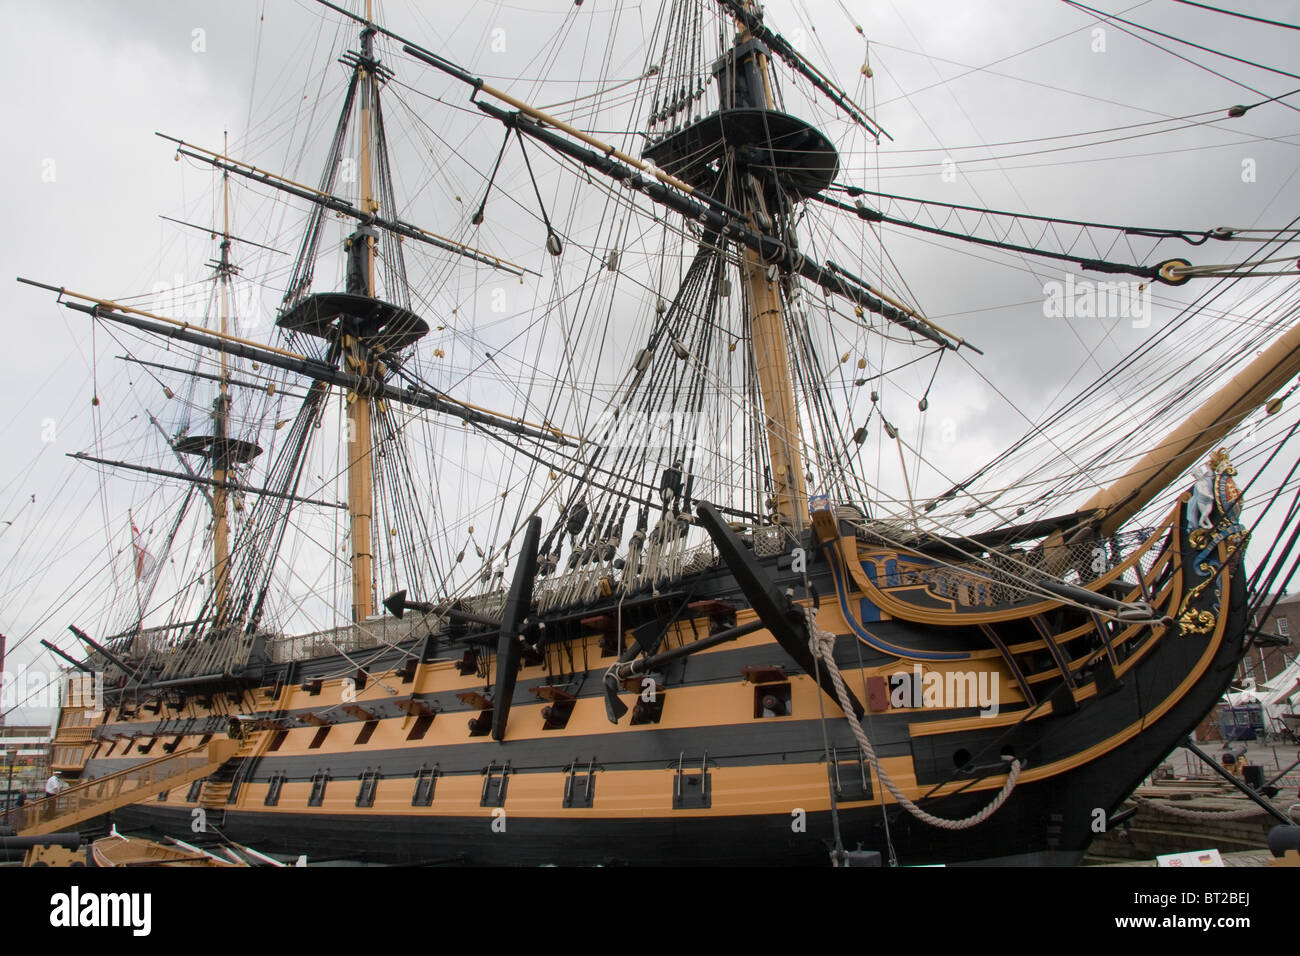 Image of Lord Nelson's flagship HMS Victory at Portsmouth Dockyard in Hampshire - Stock Image